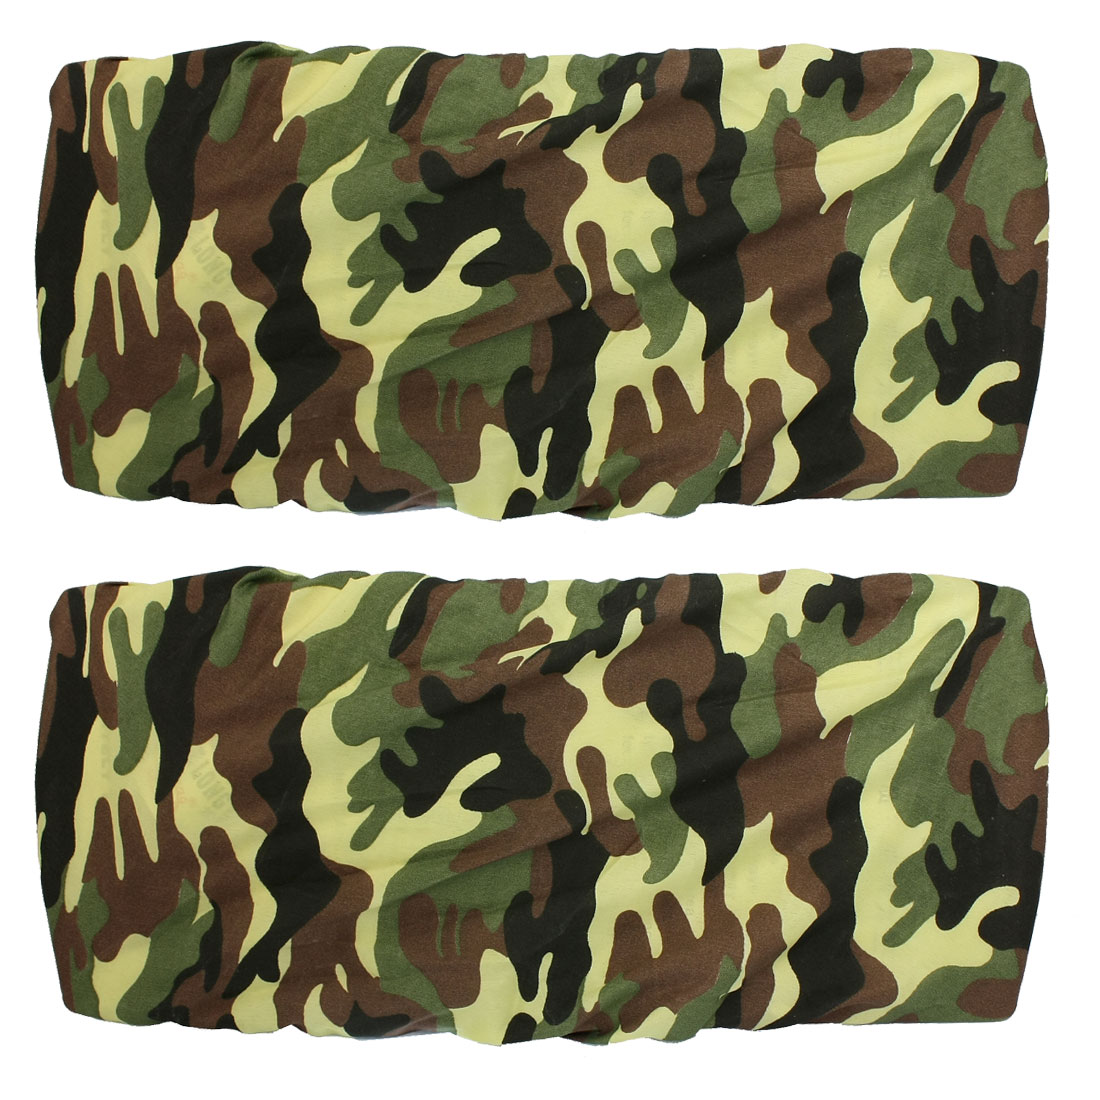 2 Pcs Auto Car Camouflage Anti Dust License Plate Cover Shield